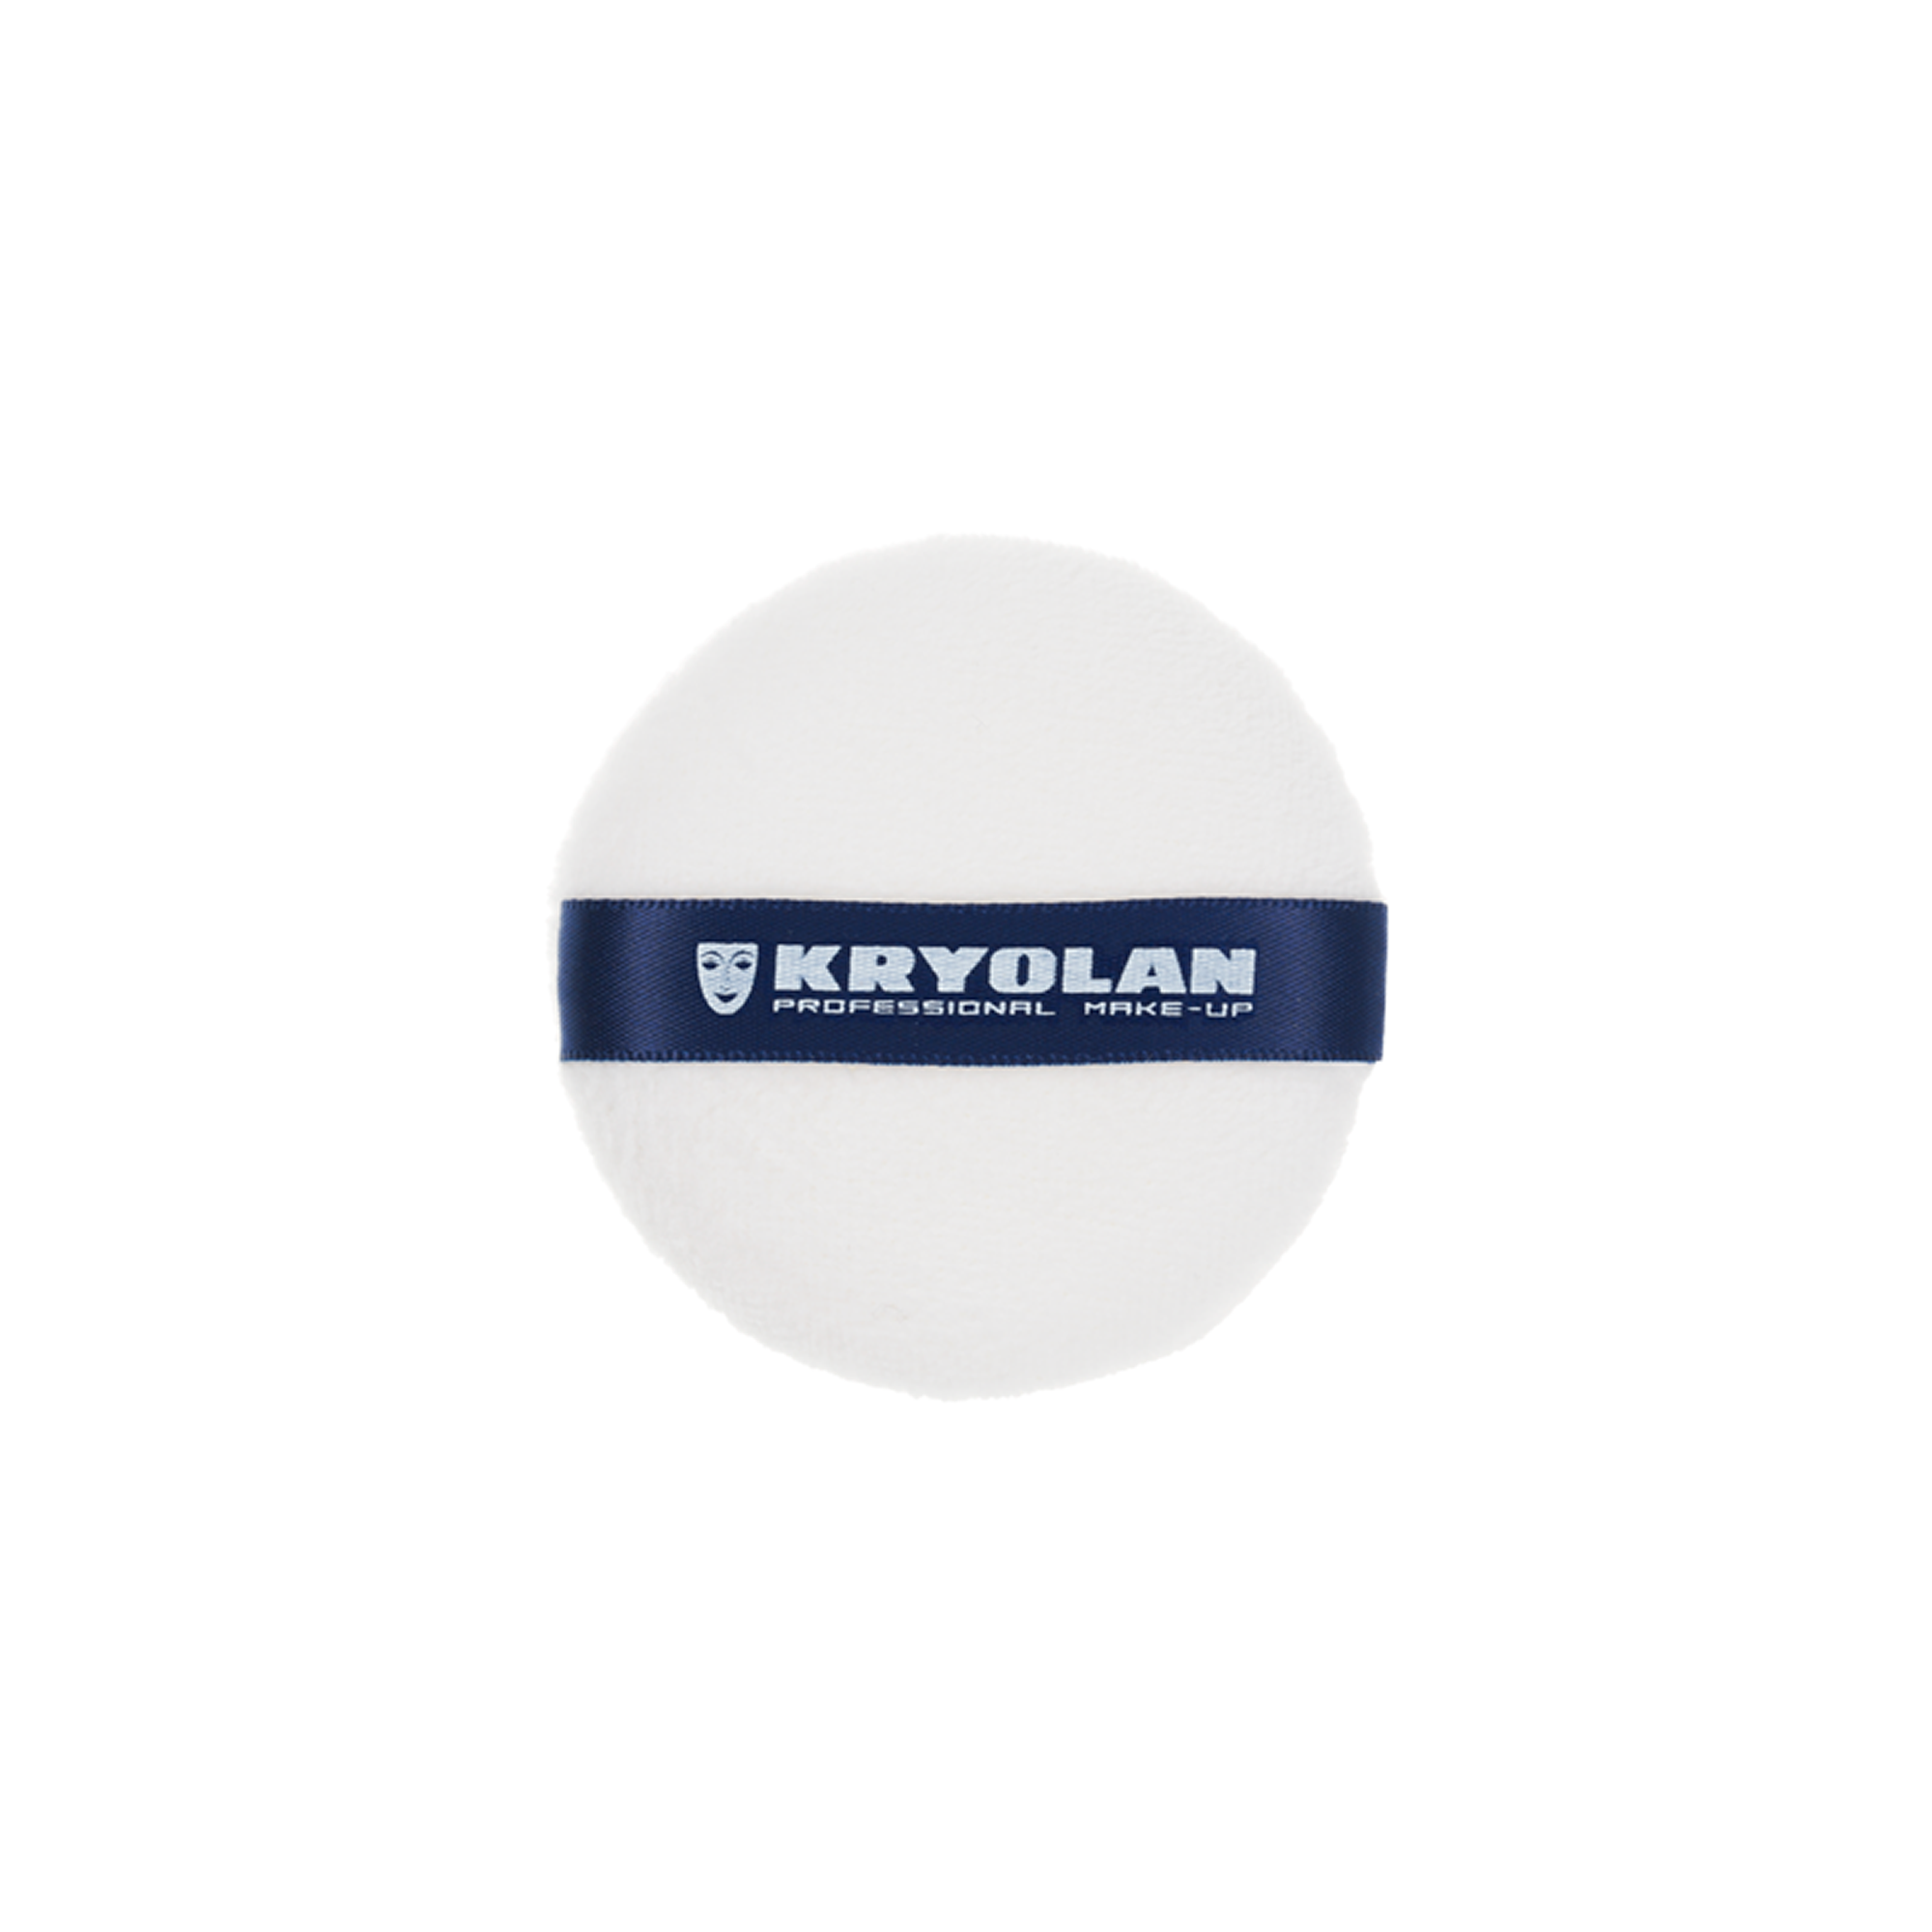 Kryolan Powder Puff White (7cm)